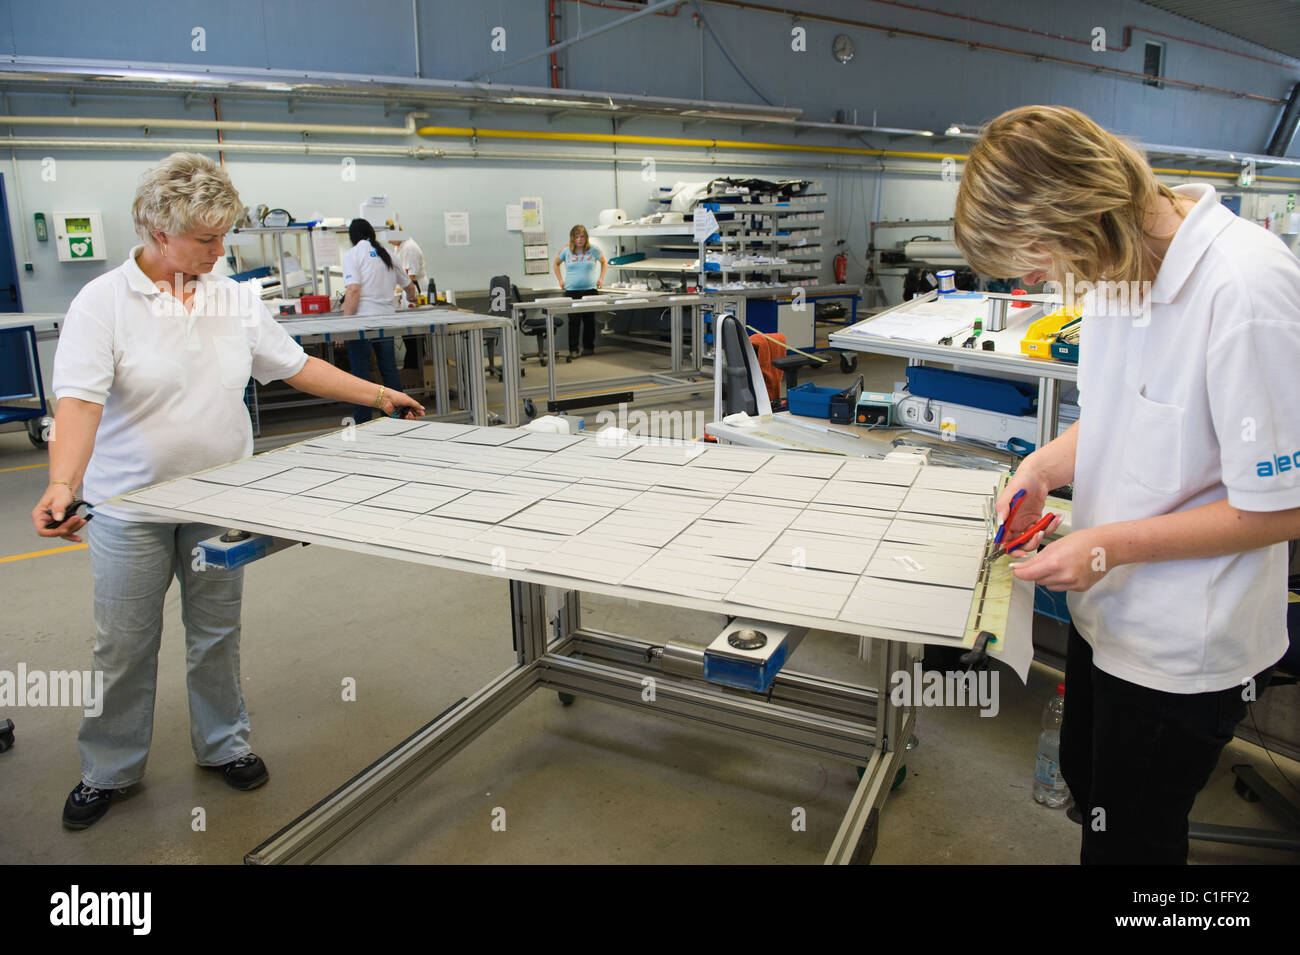 Quality control and connection of contacts, Prenzlau, Germany - Stock Image